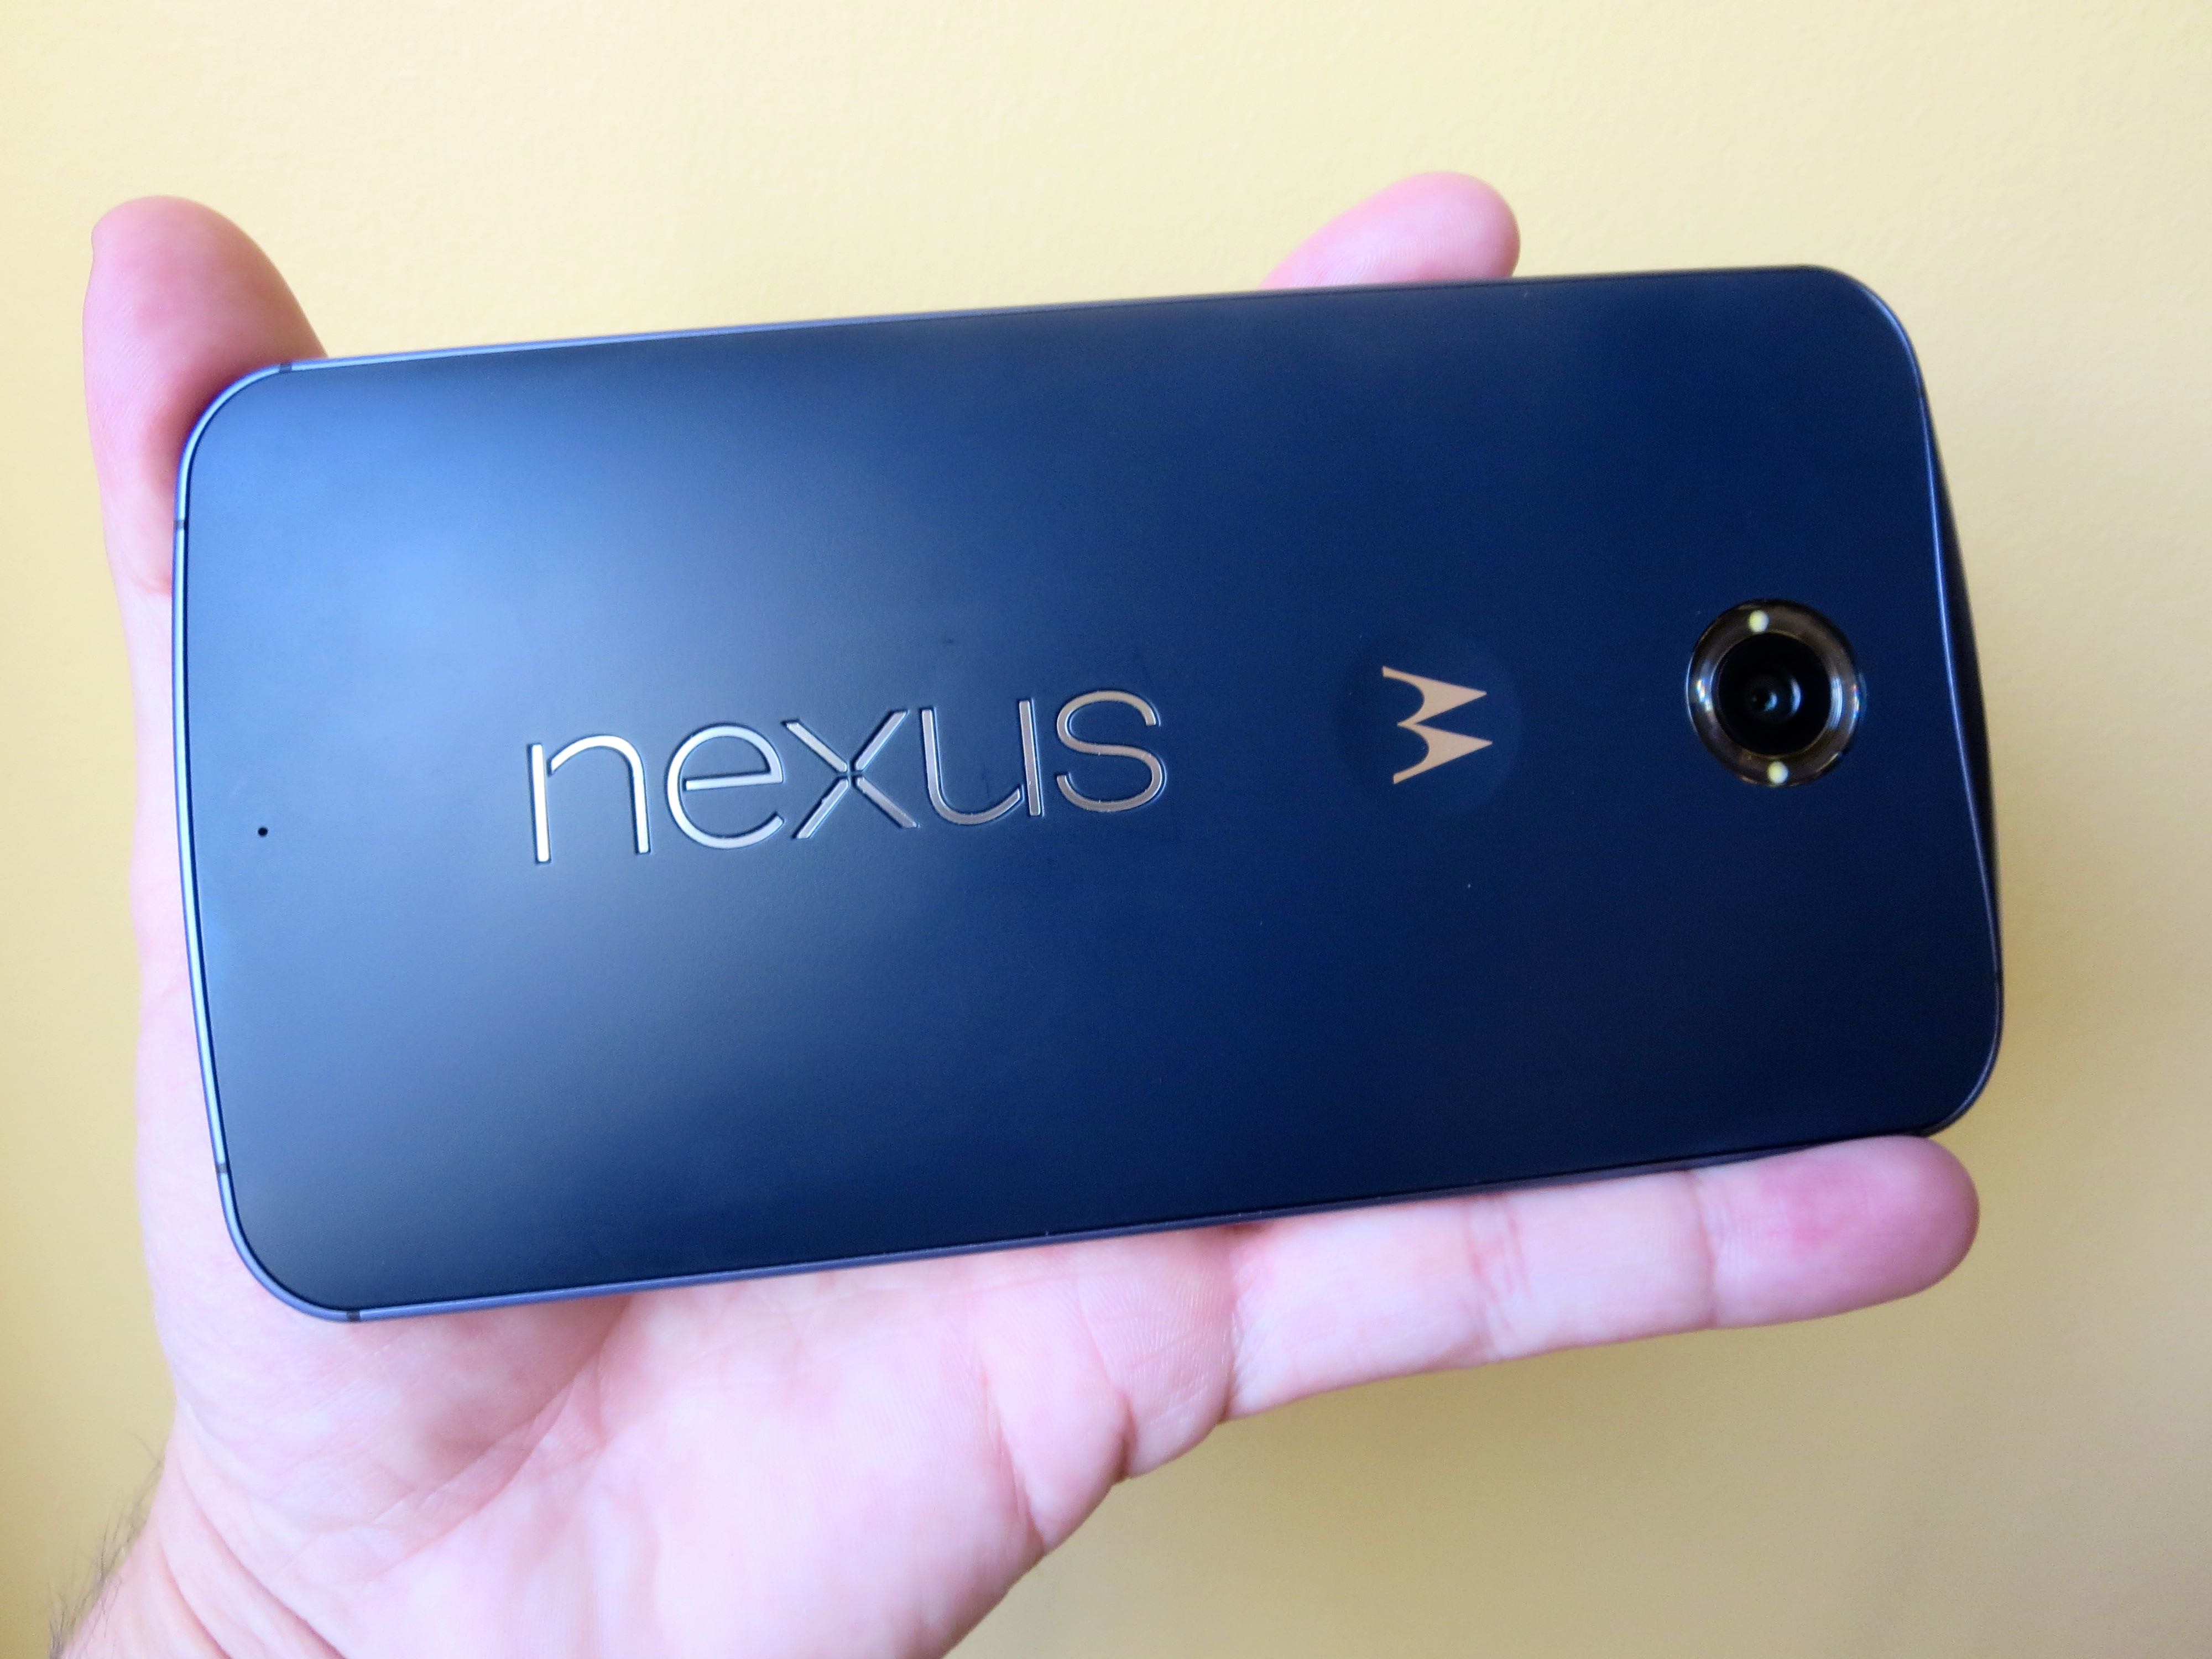 The new wireless service will be available only on Google's Nexus 6 phone.